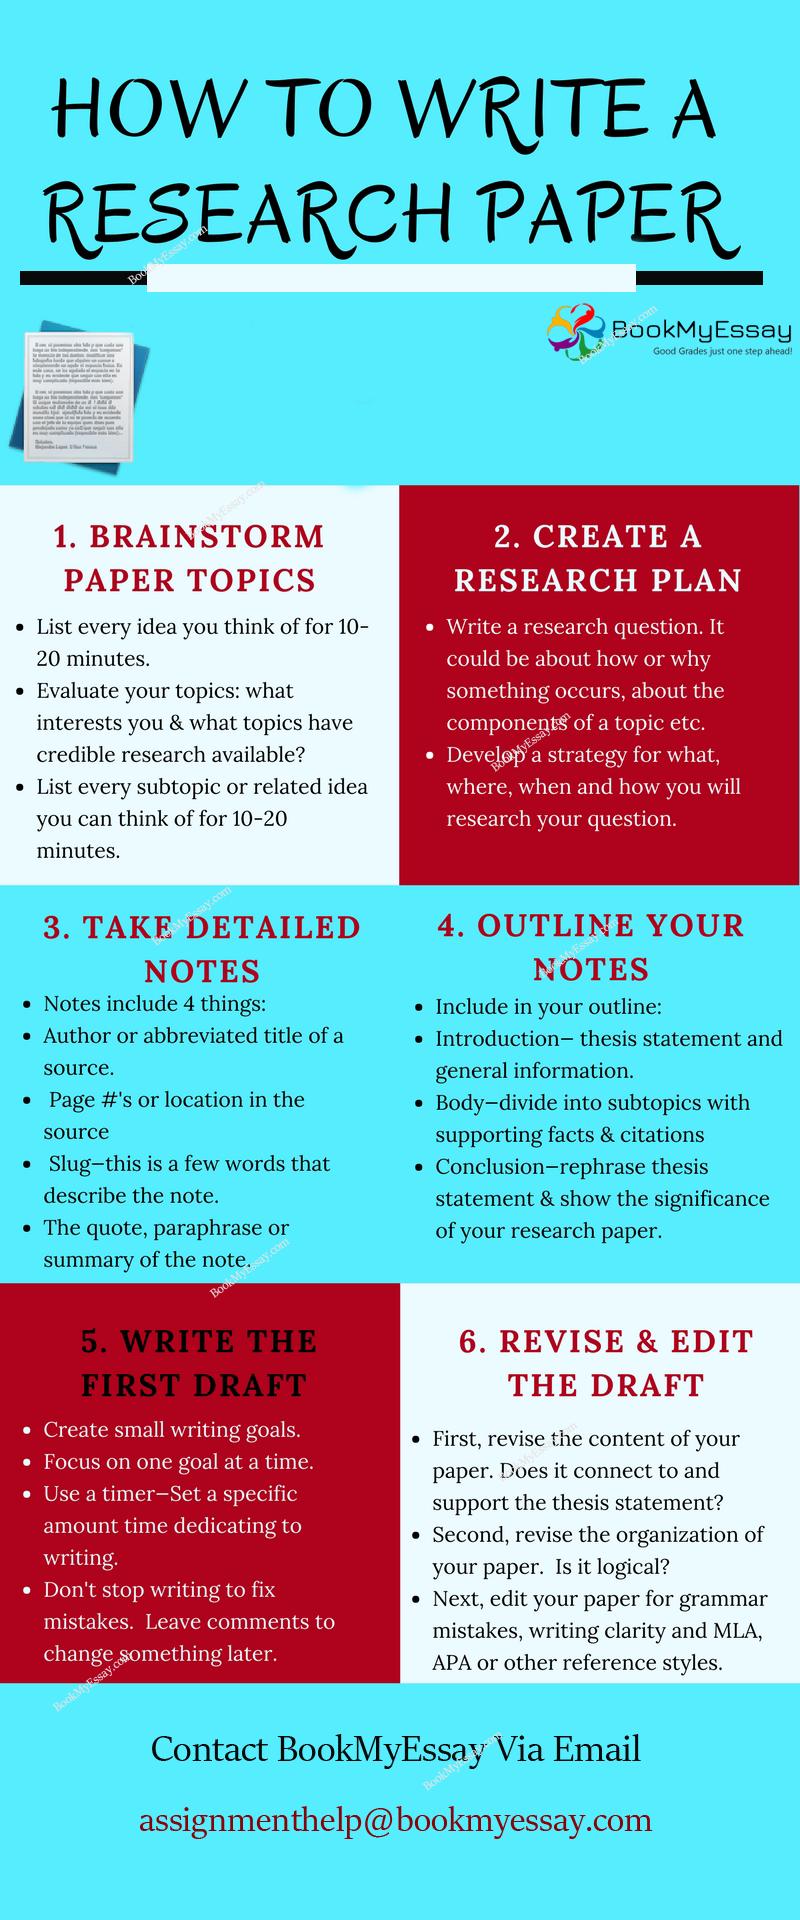 002 Researchs Writing Service Outstanding Research Papers Paper Services In Chennai Reddit India Full